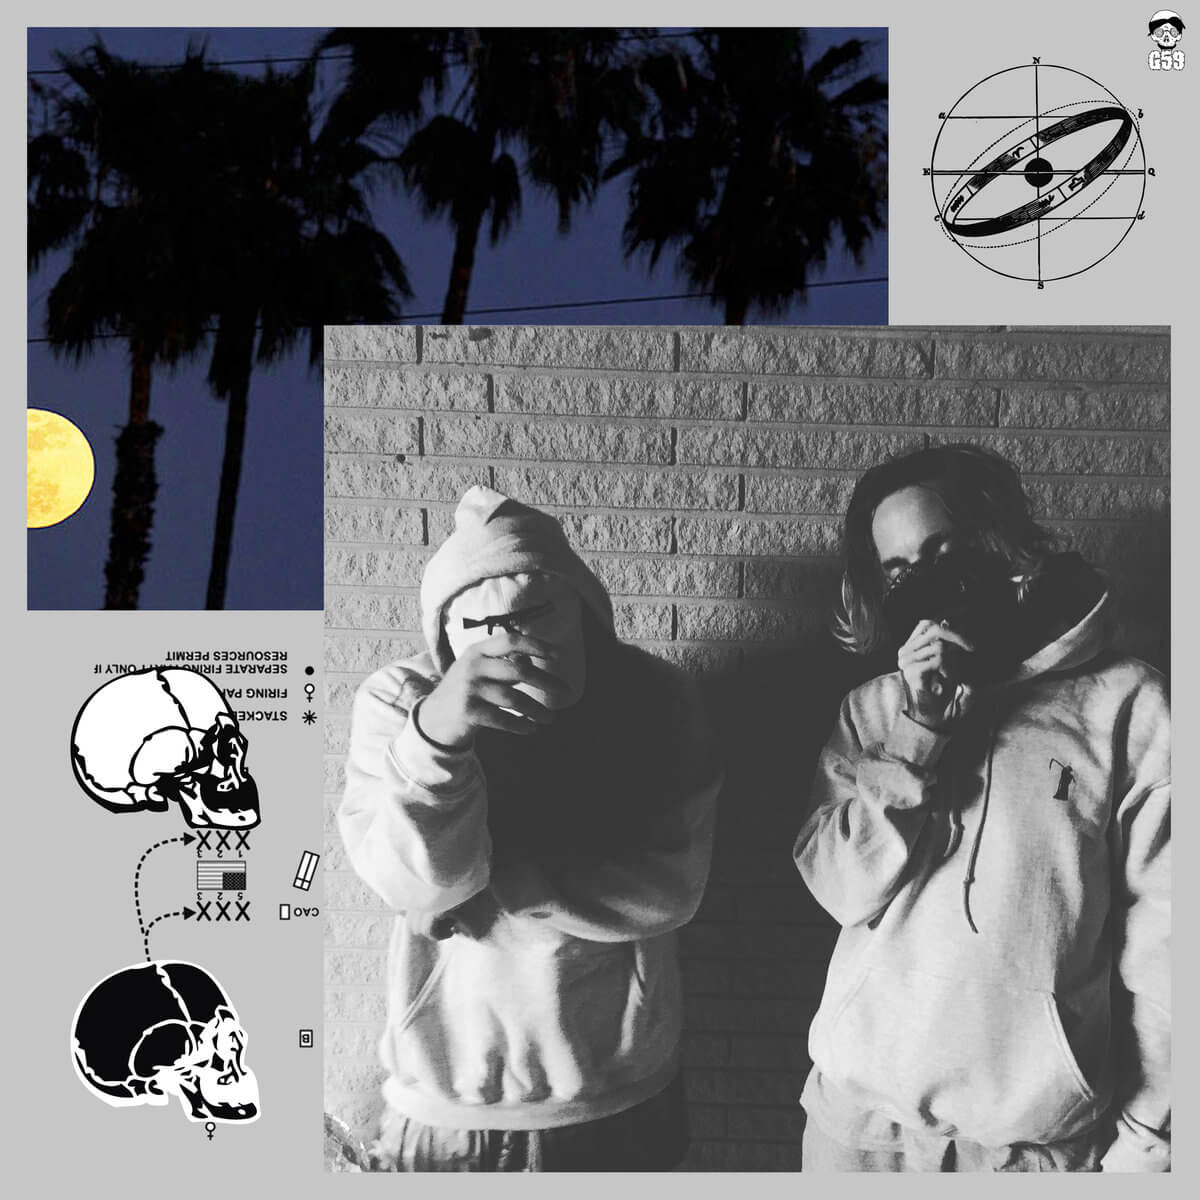 $UICIDEBOY$ – CAN OF WORMS